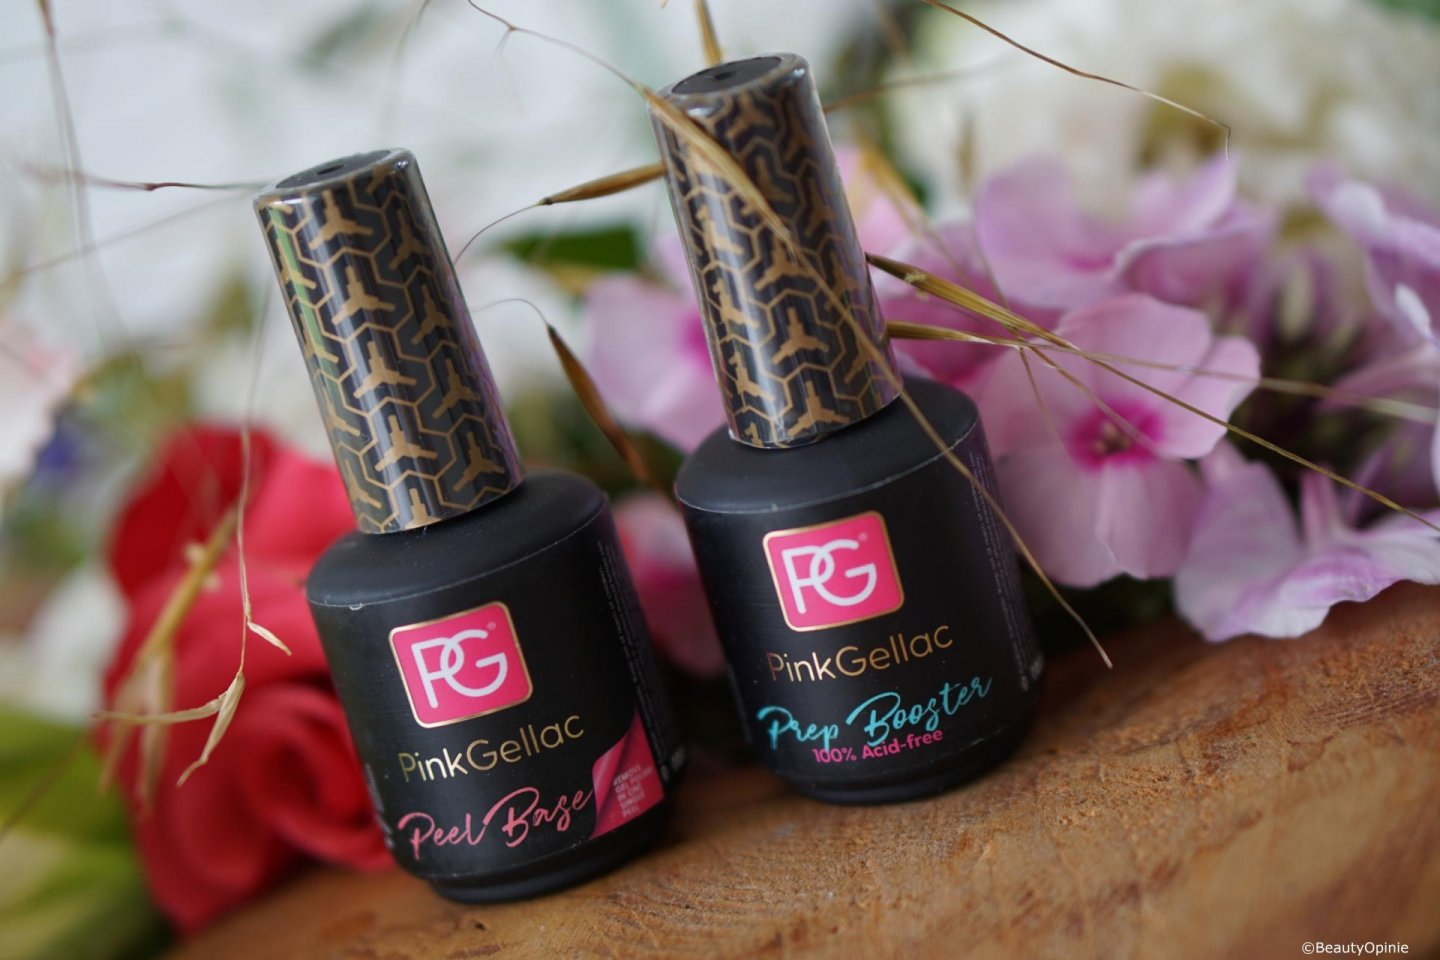 Review | De Peel Off Base van Pink Gellac